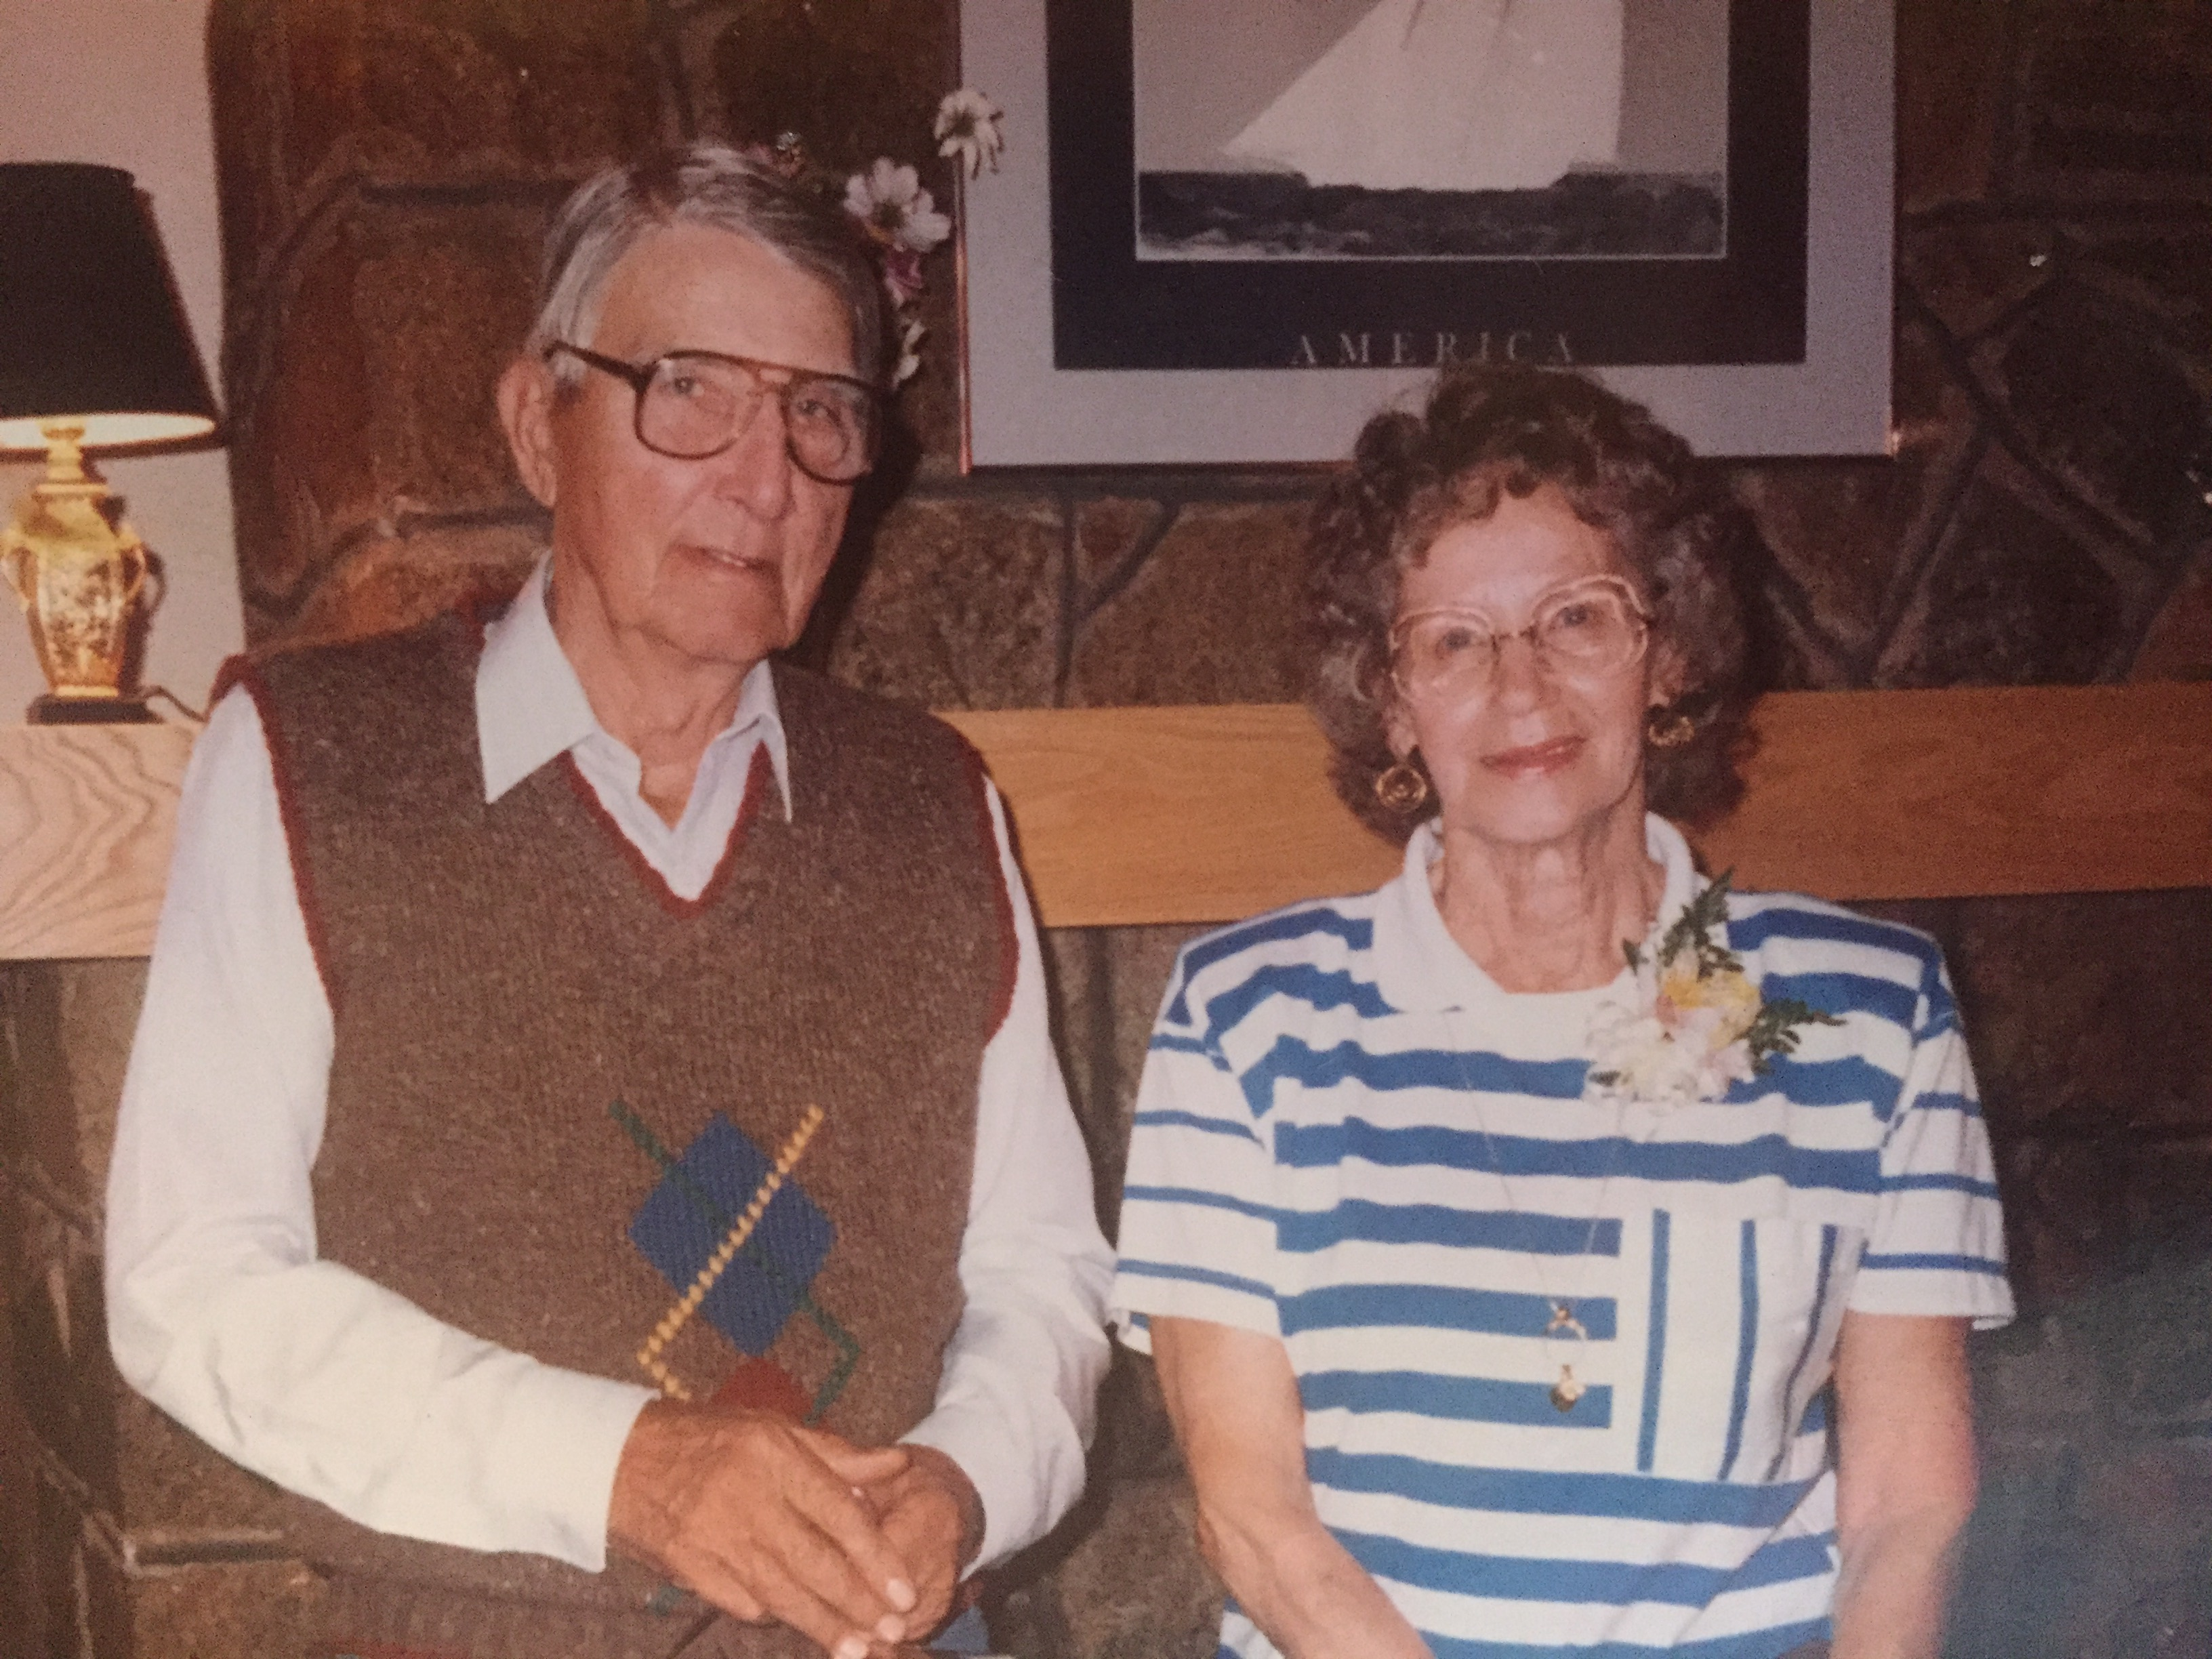 My grandparents, Ernest and Hilda Hanson, possibly in 1988. Photo courtesy of the Hanson family.